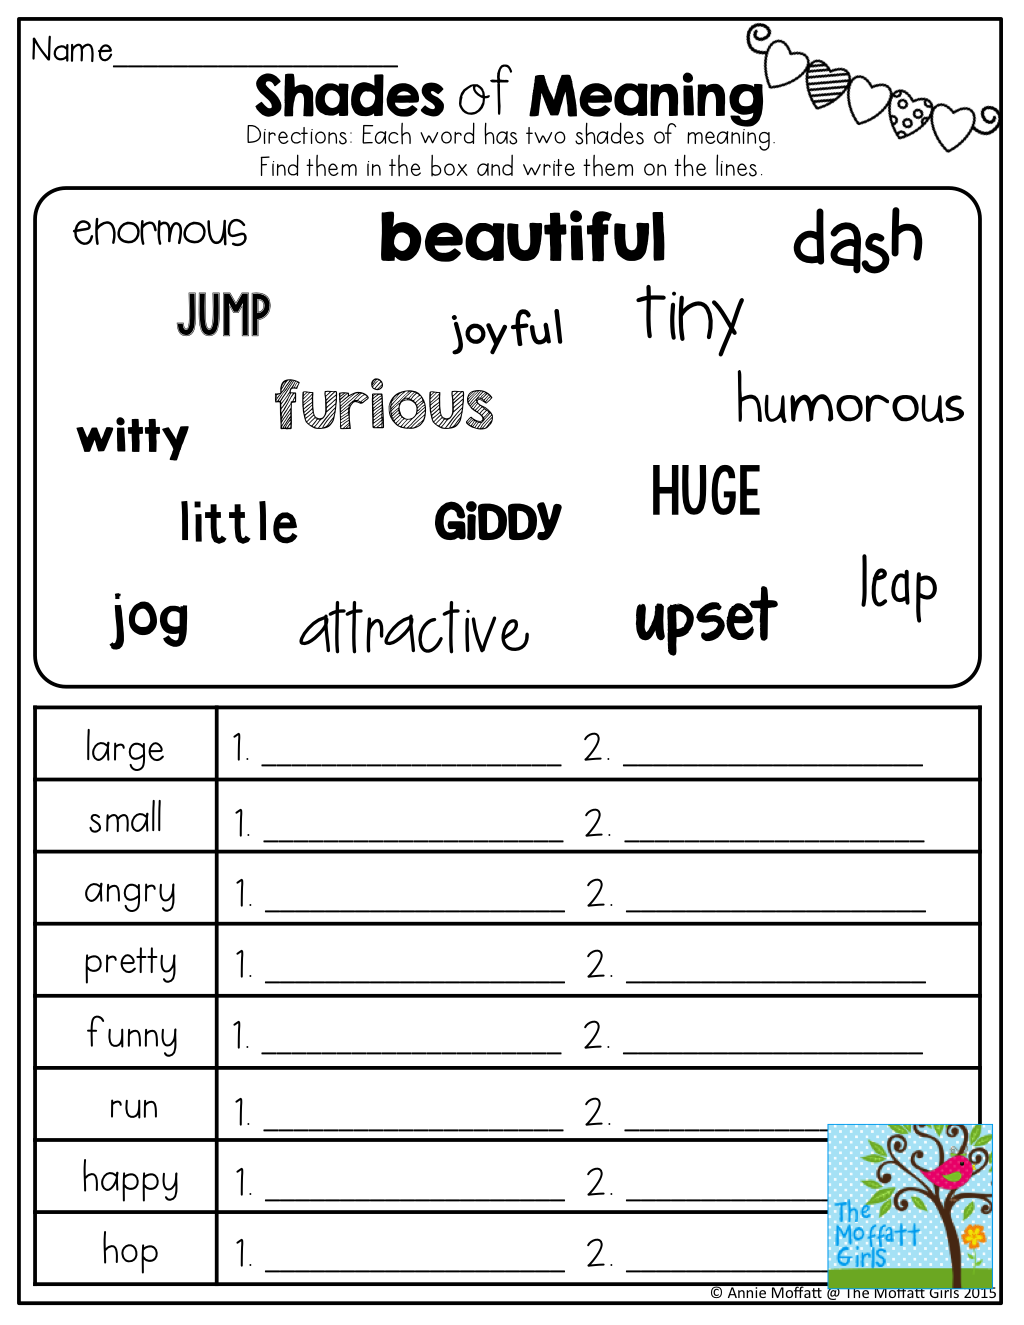 medium resolution of Shades of Meaning! TONS of other great printables!   Shades of meaning